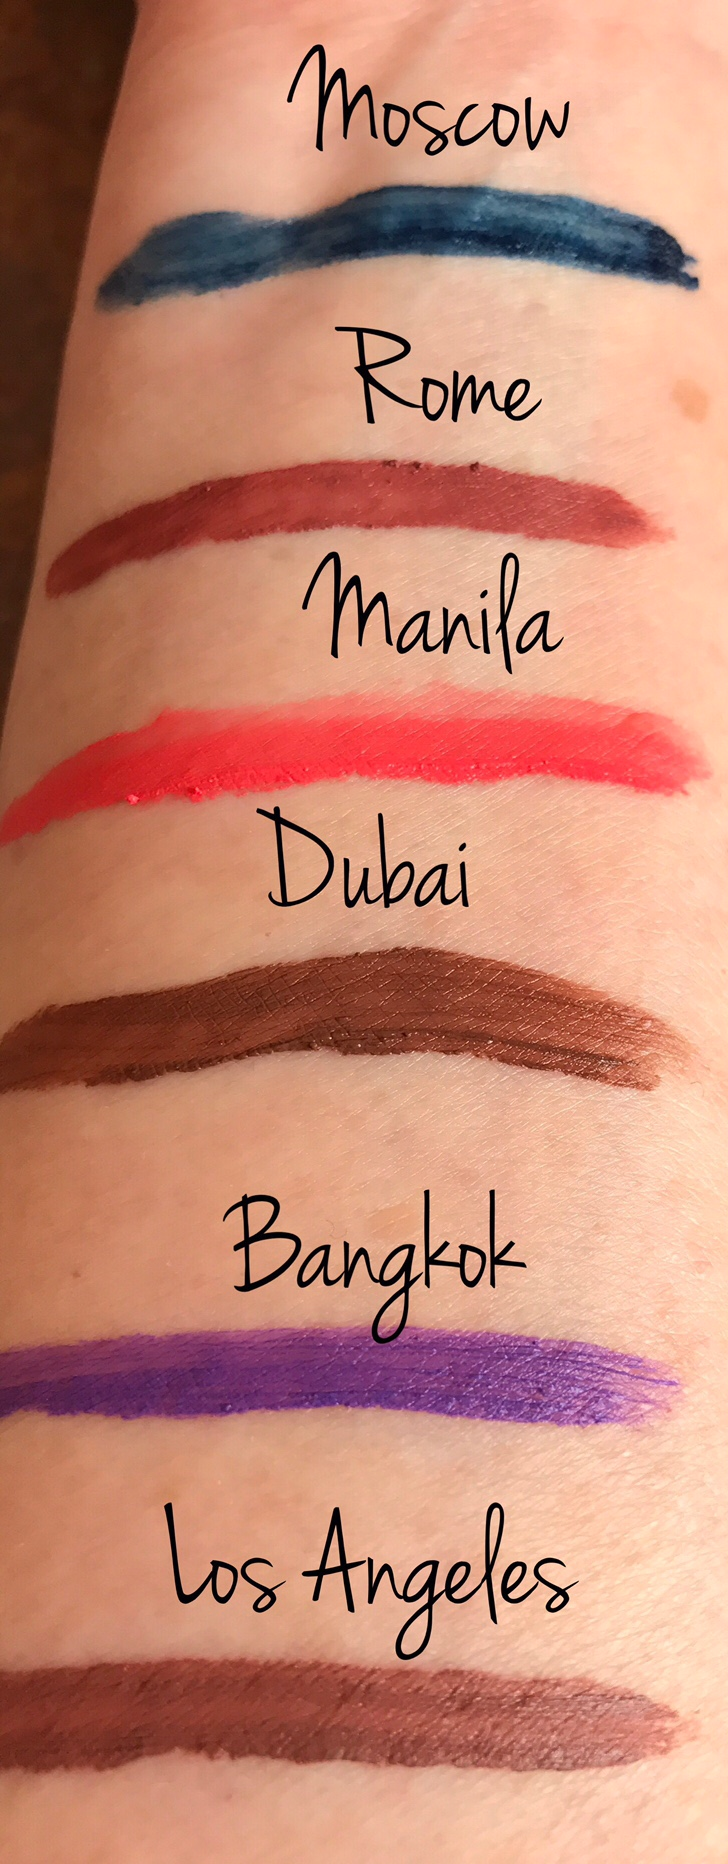 NYX Soft Matte Lip Cream Vault, swatches 2nd half of row 3 neversaydiebeauty.com